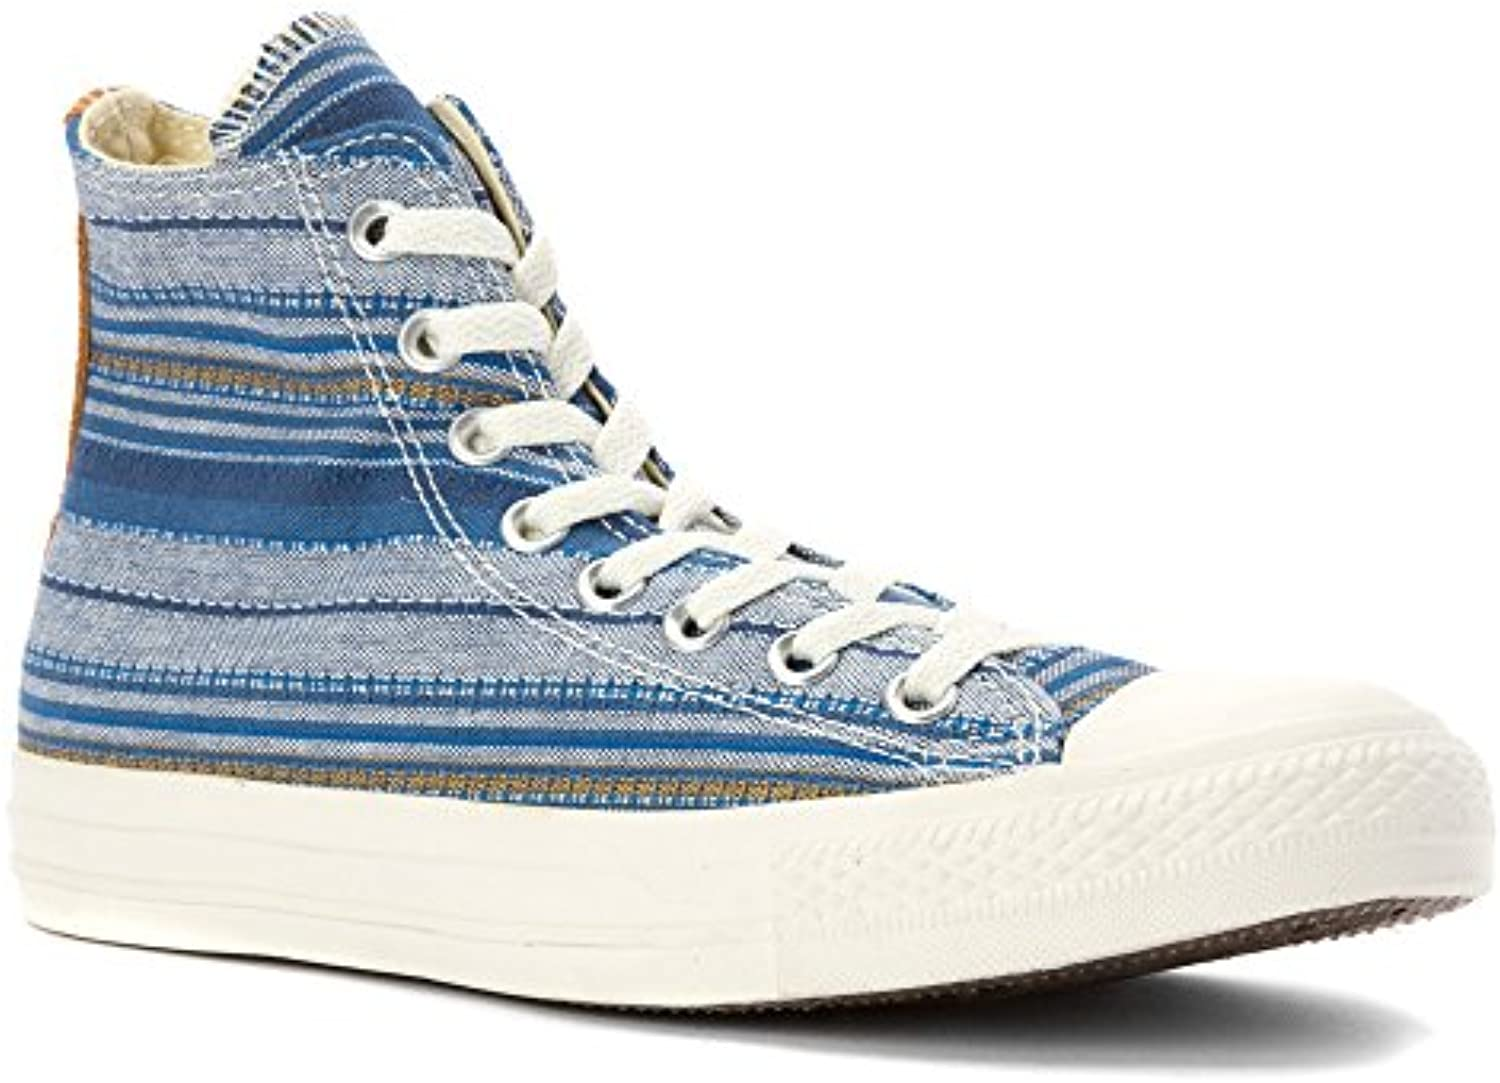 Converse Unisex Chuck Taylor All Star Summer Crafted Sneaker